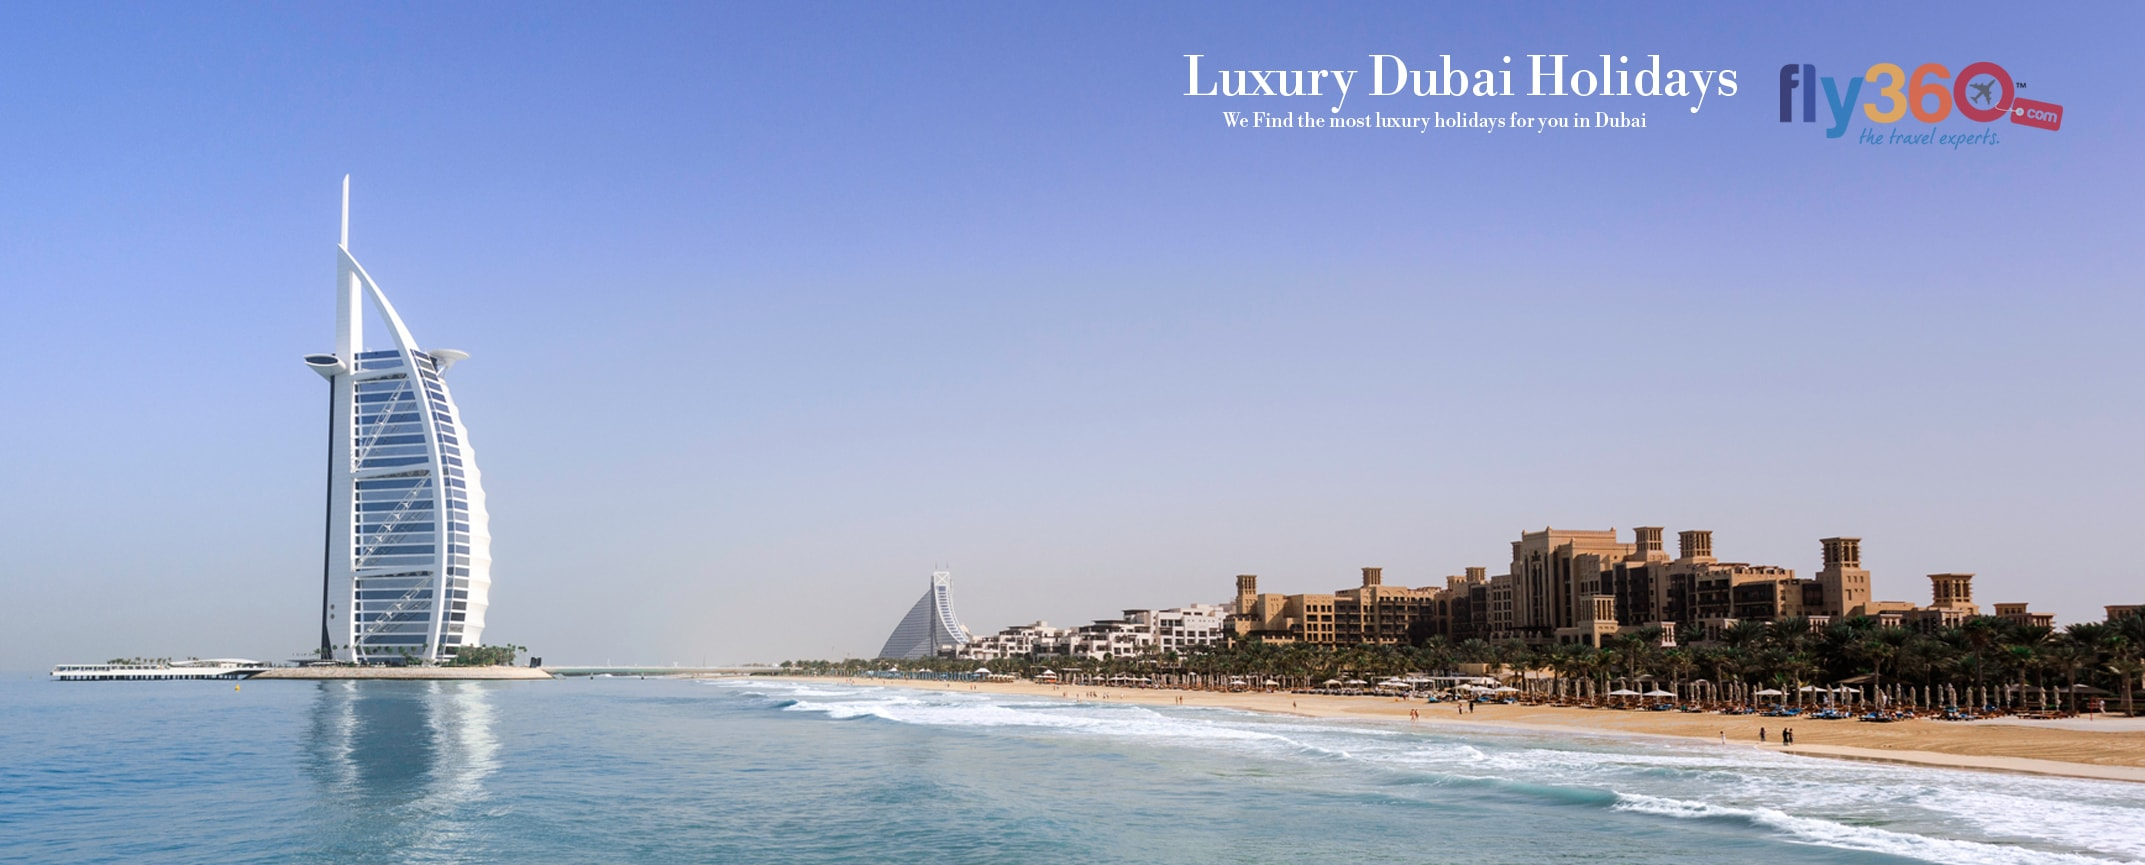 Book Holidays in Dubai